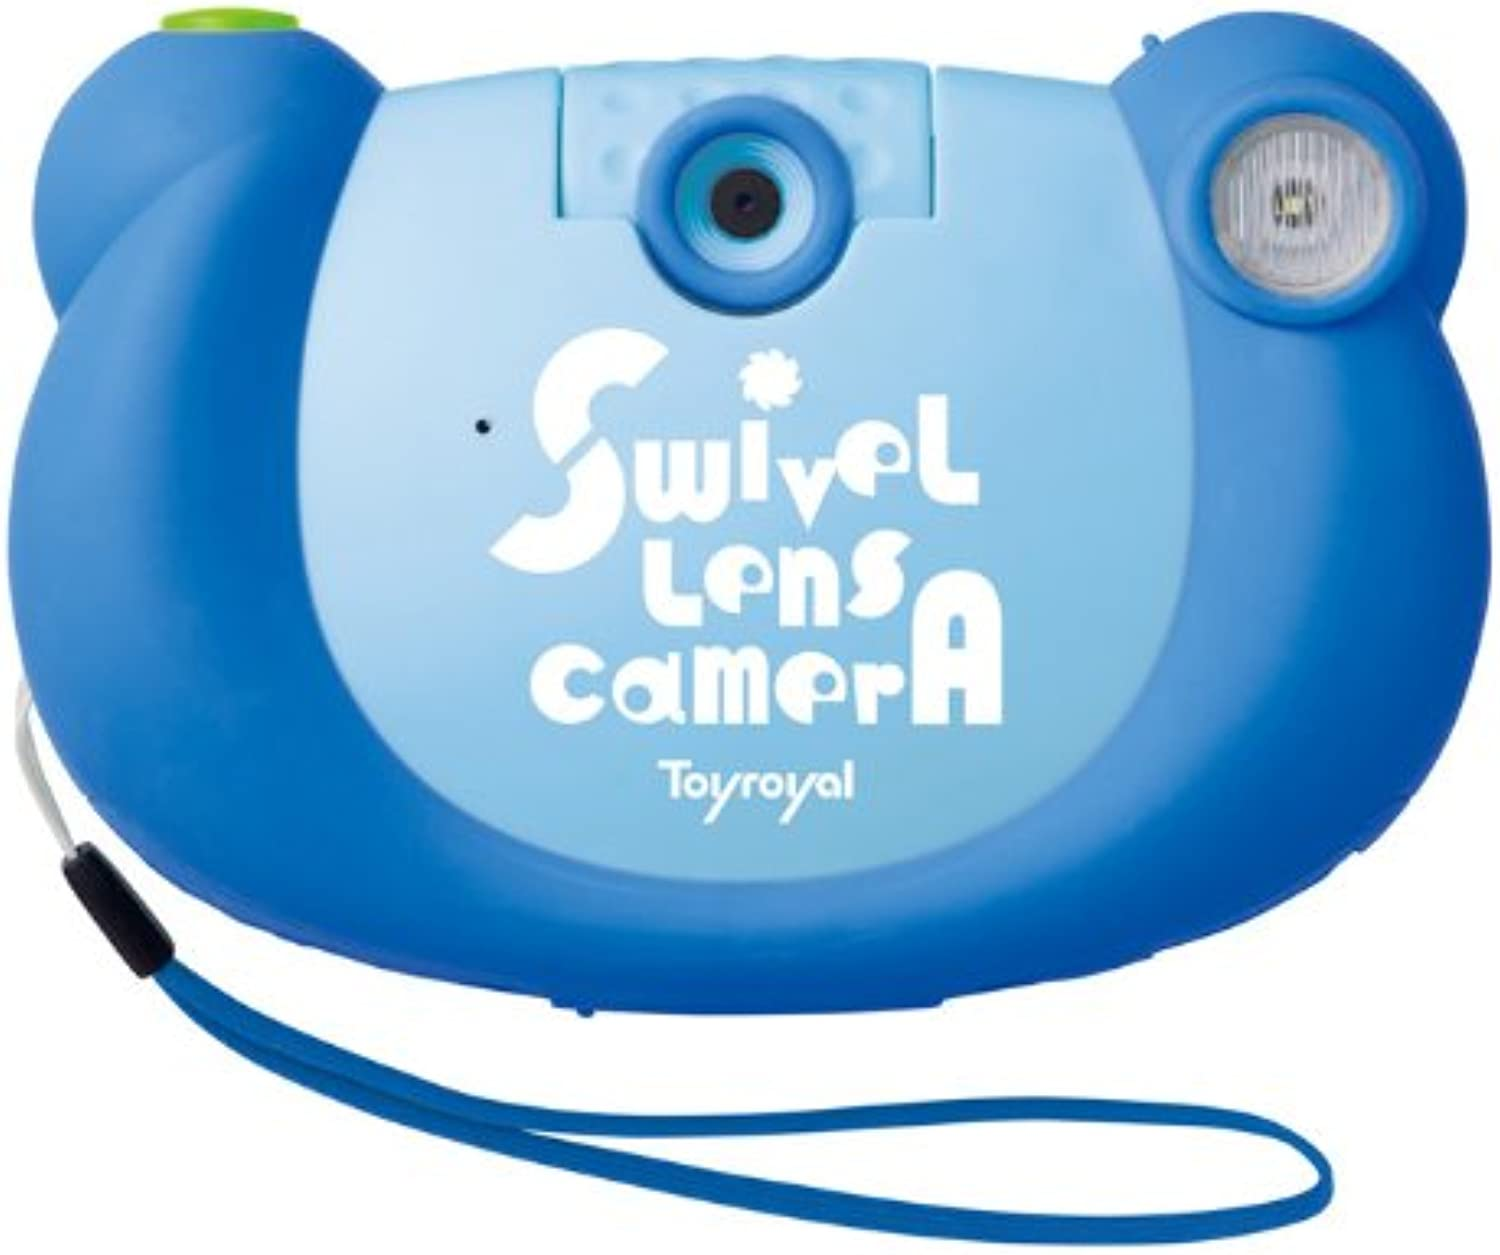 mejor moda KIDS Digital Camera azul no. 8834 (japan (japan (japan import)  seguro de calidad